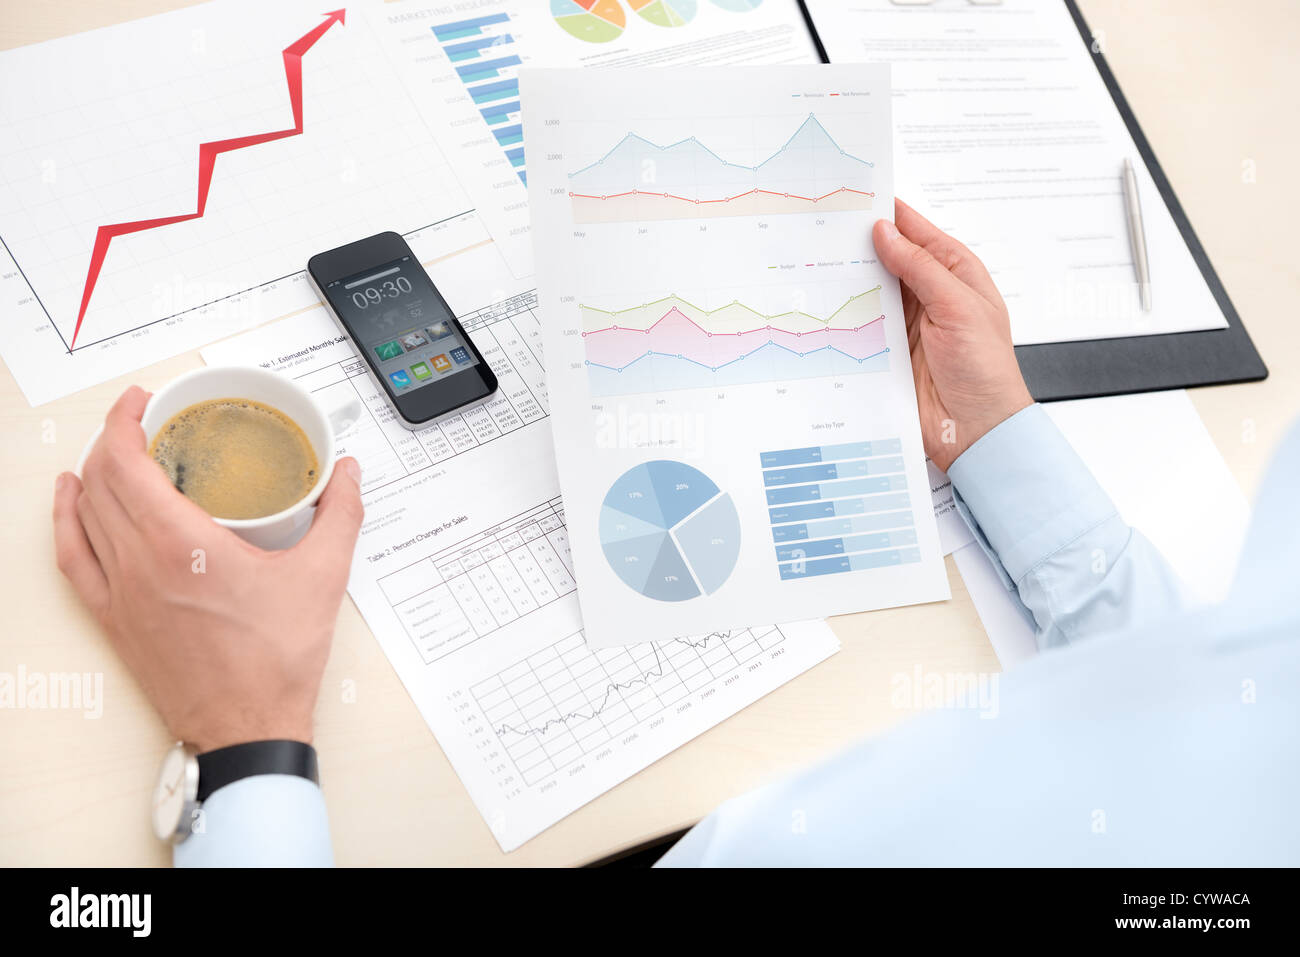 Businessman at the workplace drink coffee and looking some papers with charts and numbers. - Stock Image